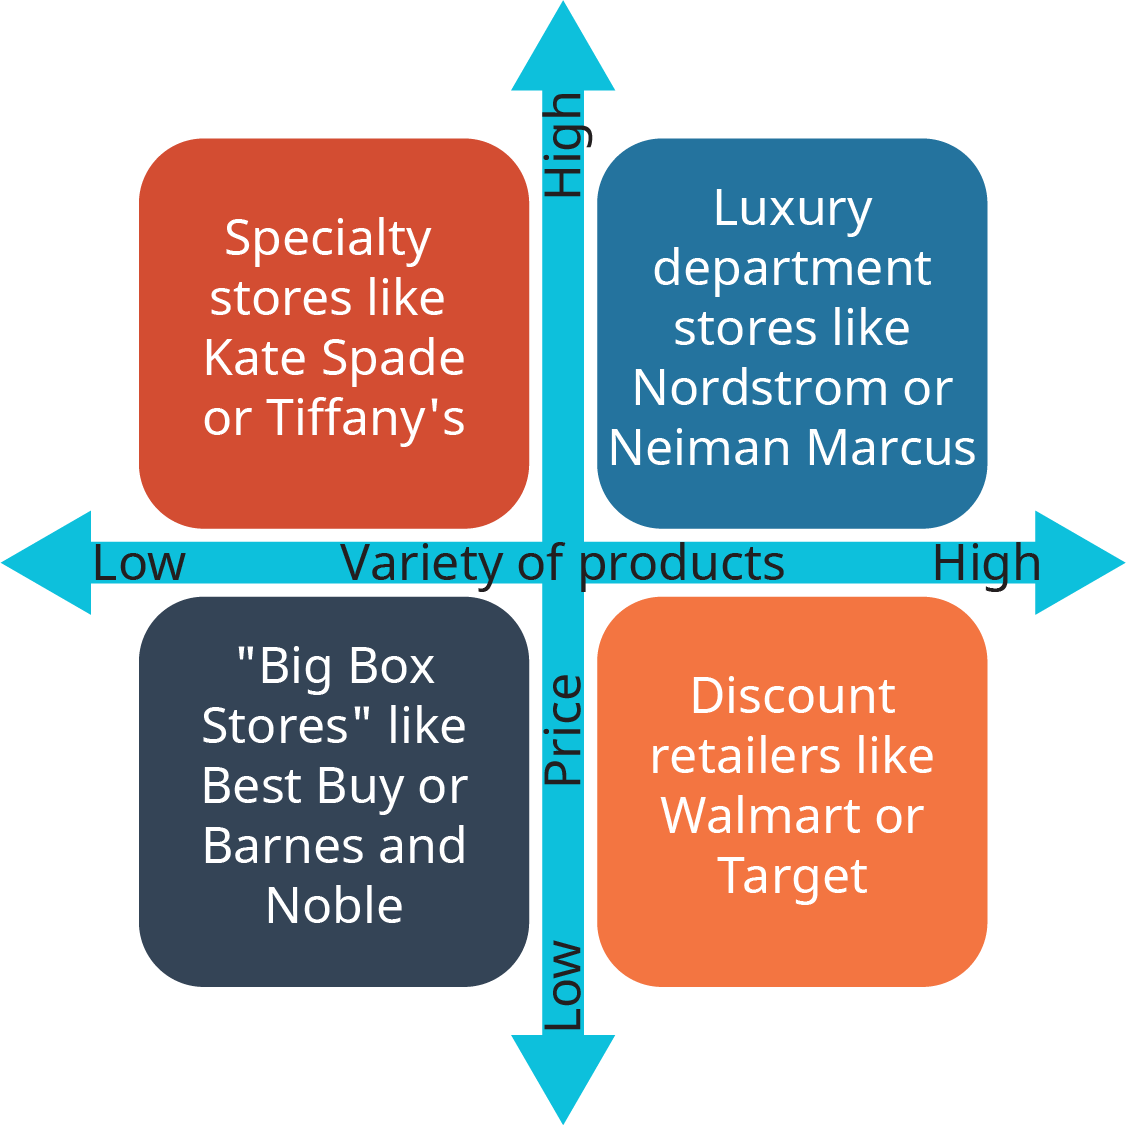 A diagram shows the strategic groups present in the retail industry.